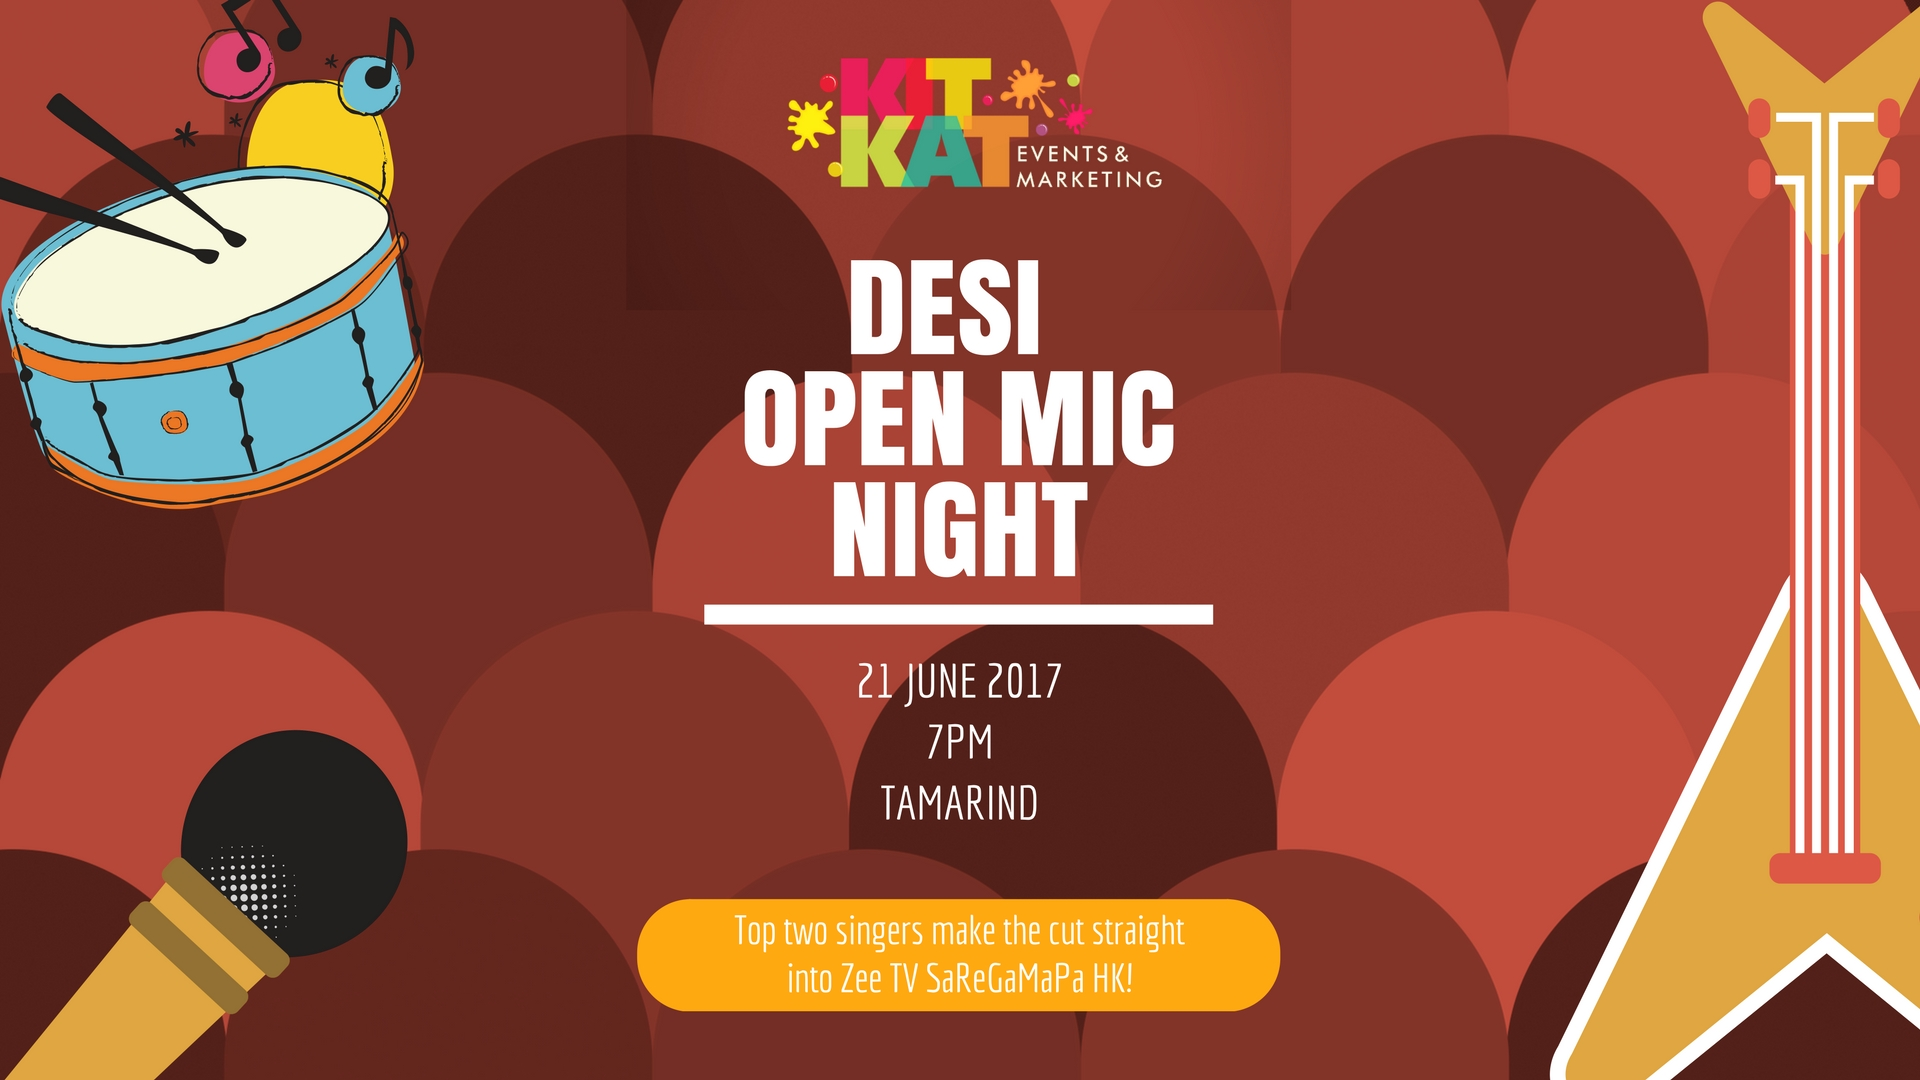 DESI OPEN MIC NIGht